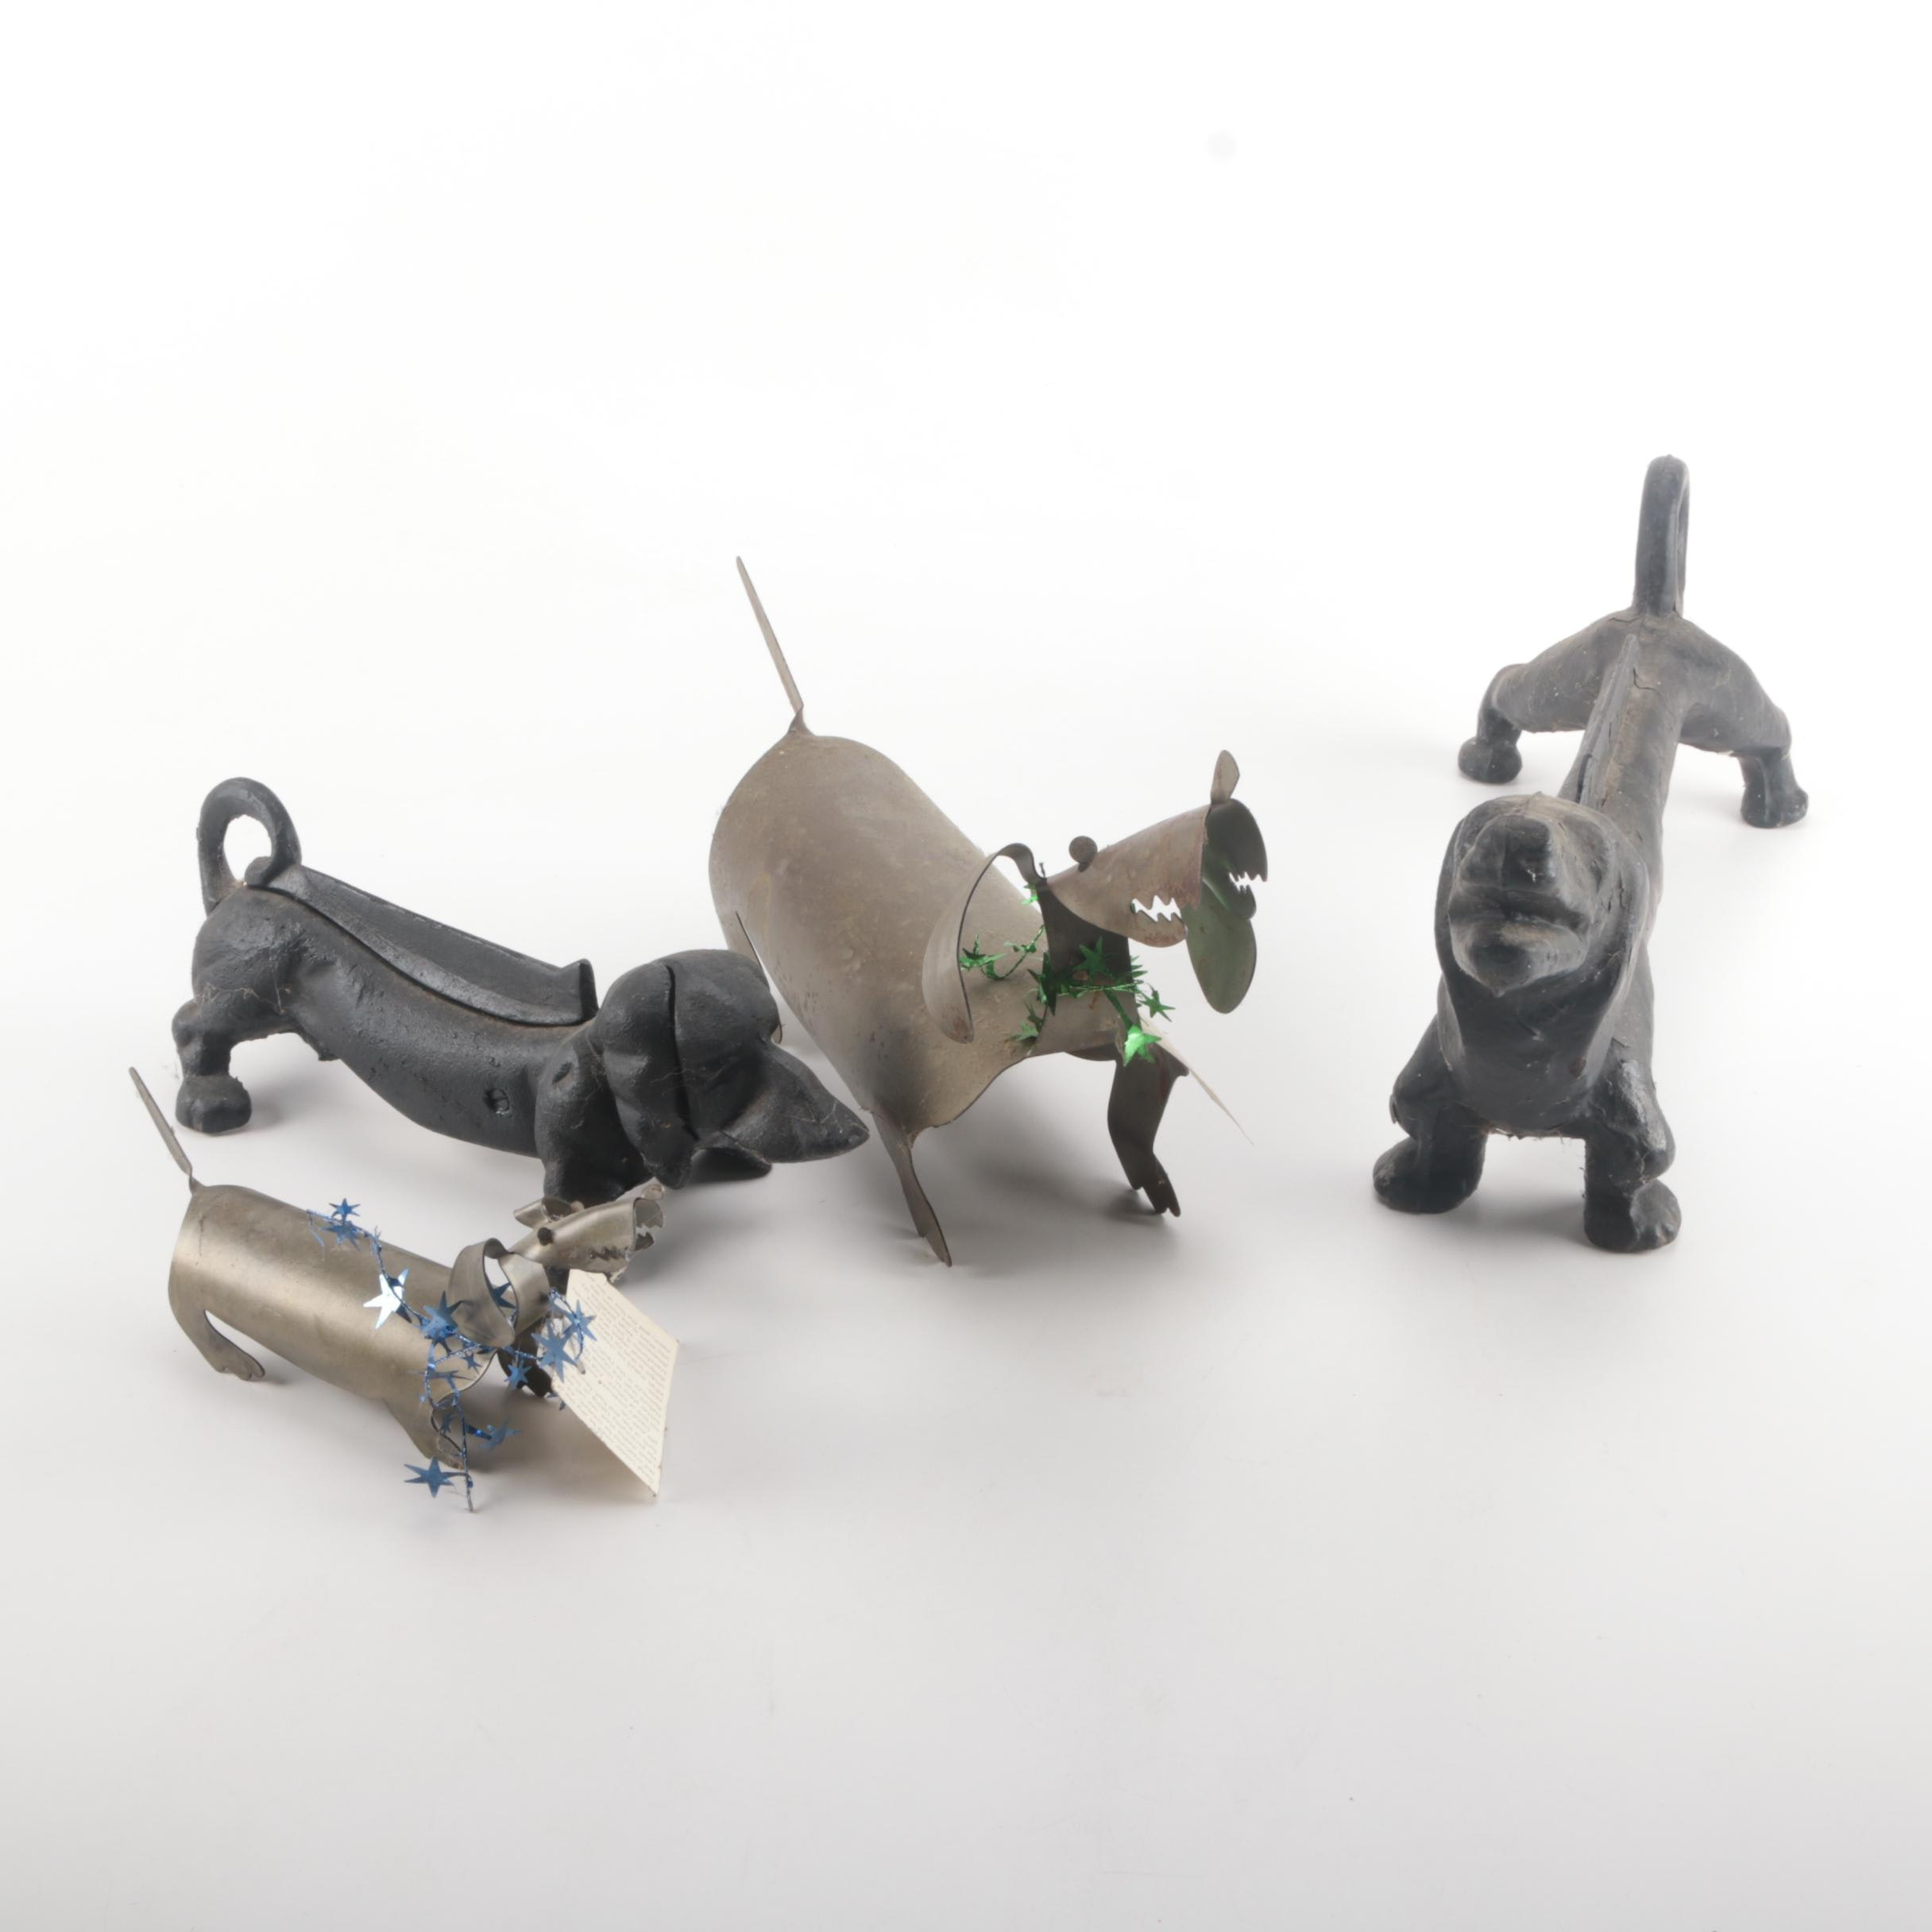 Assortment of Dachshund Figurines Featuring David Lesser